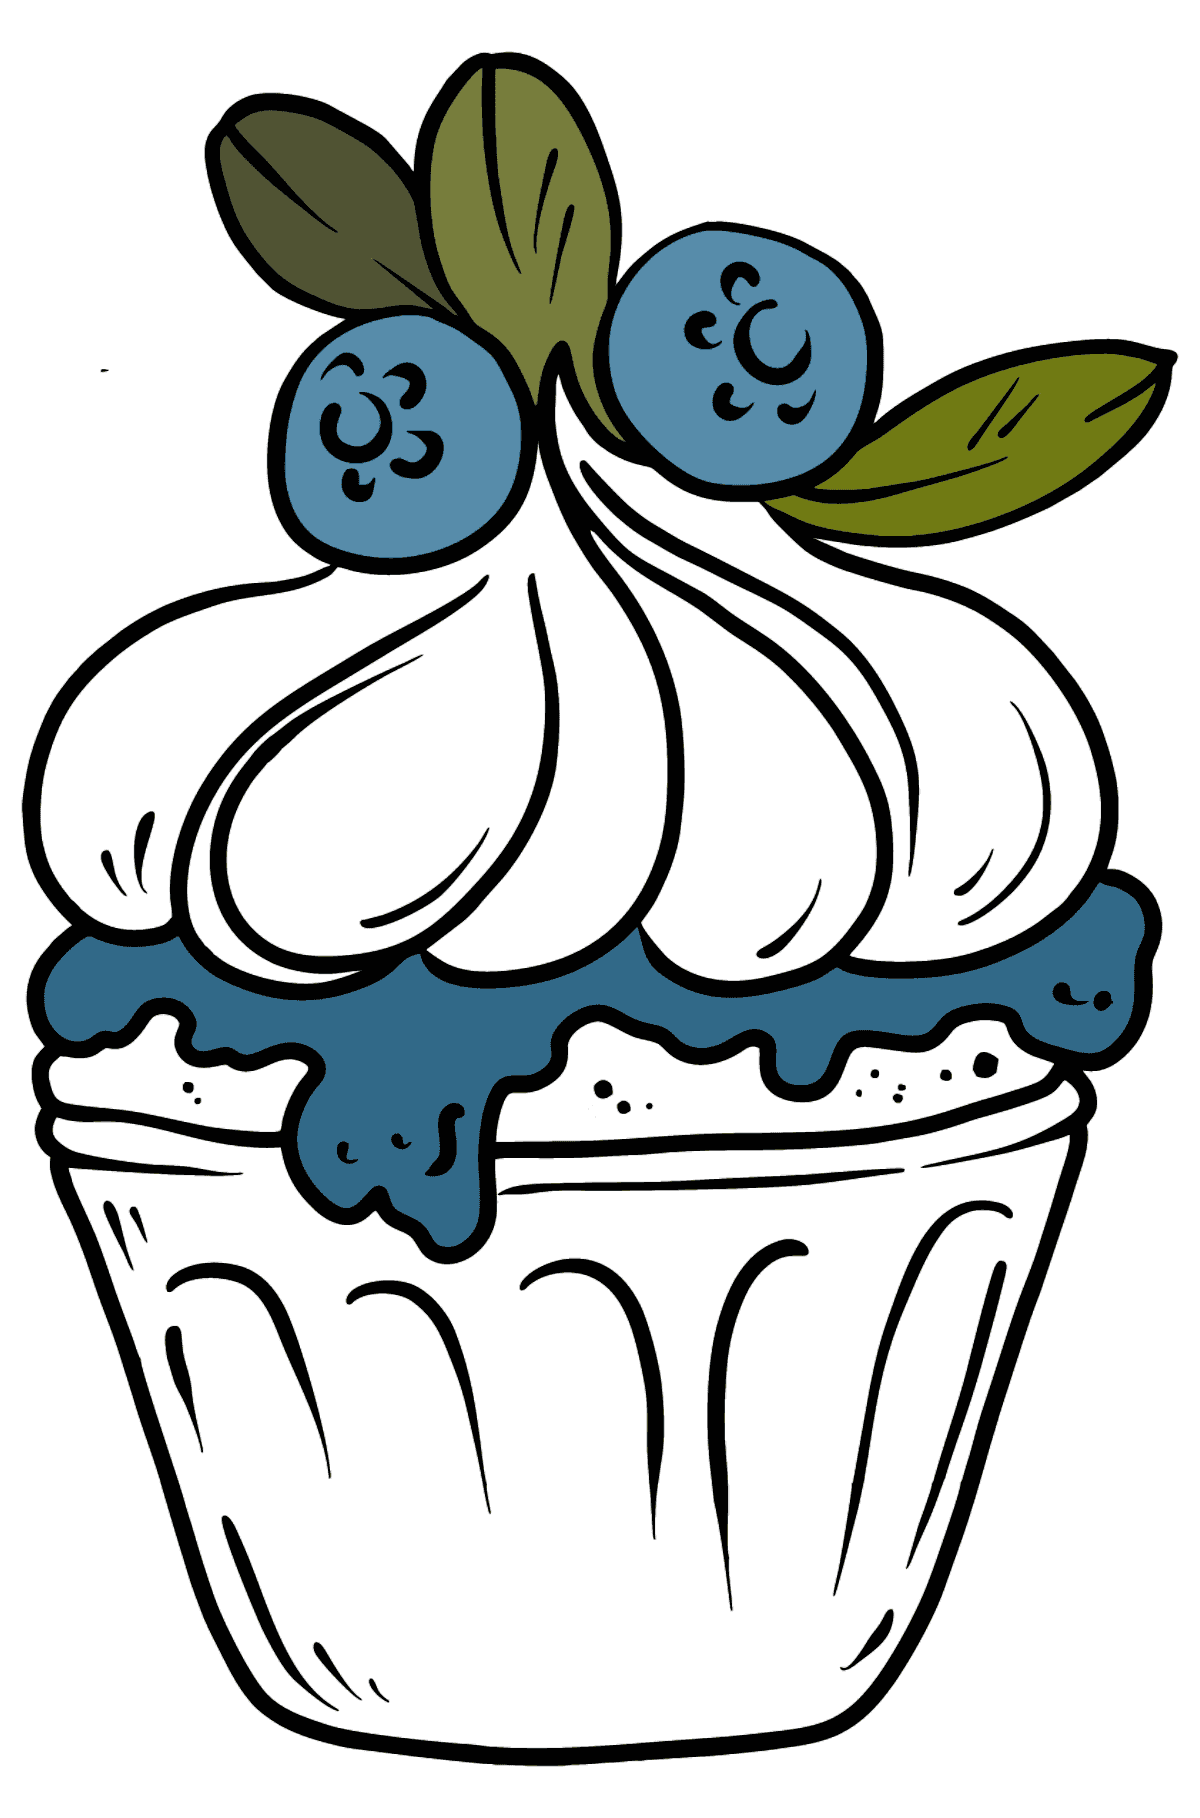 Delicious Cupcake coloring page - Coloring Pages for Kids